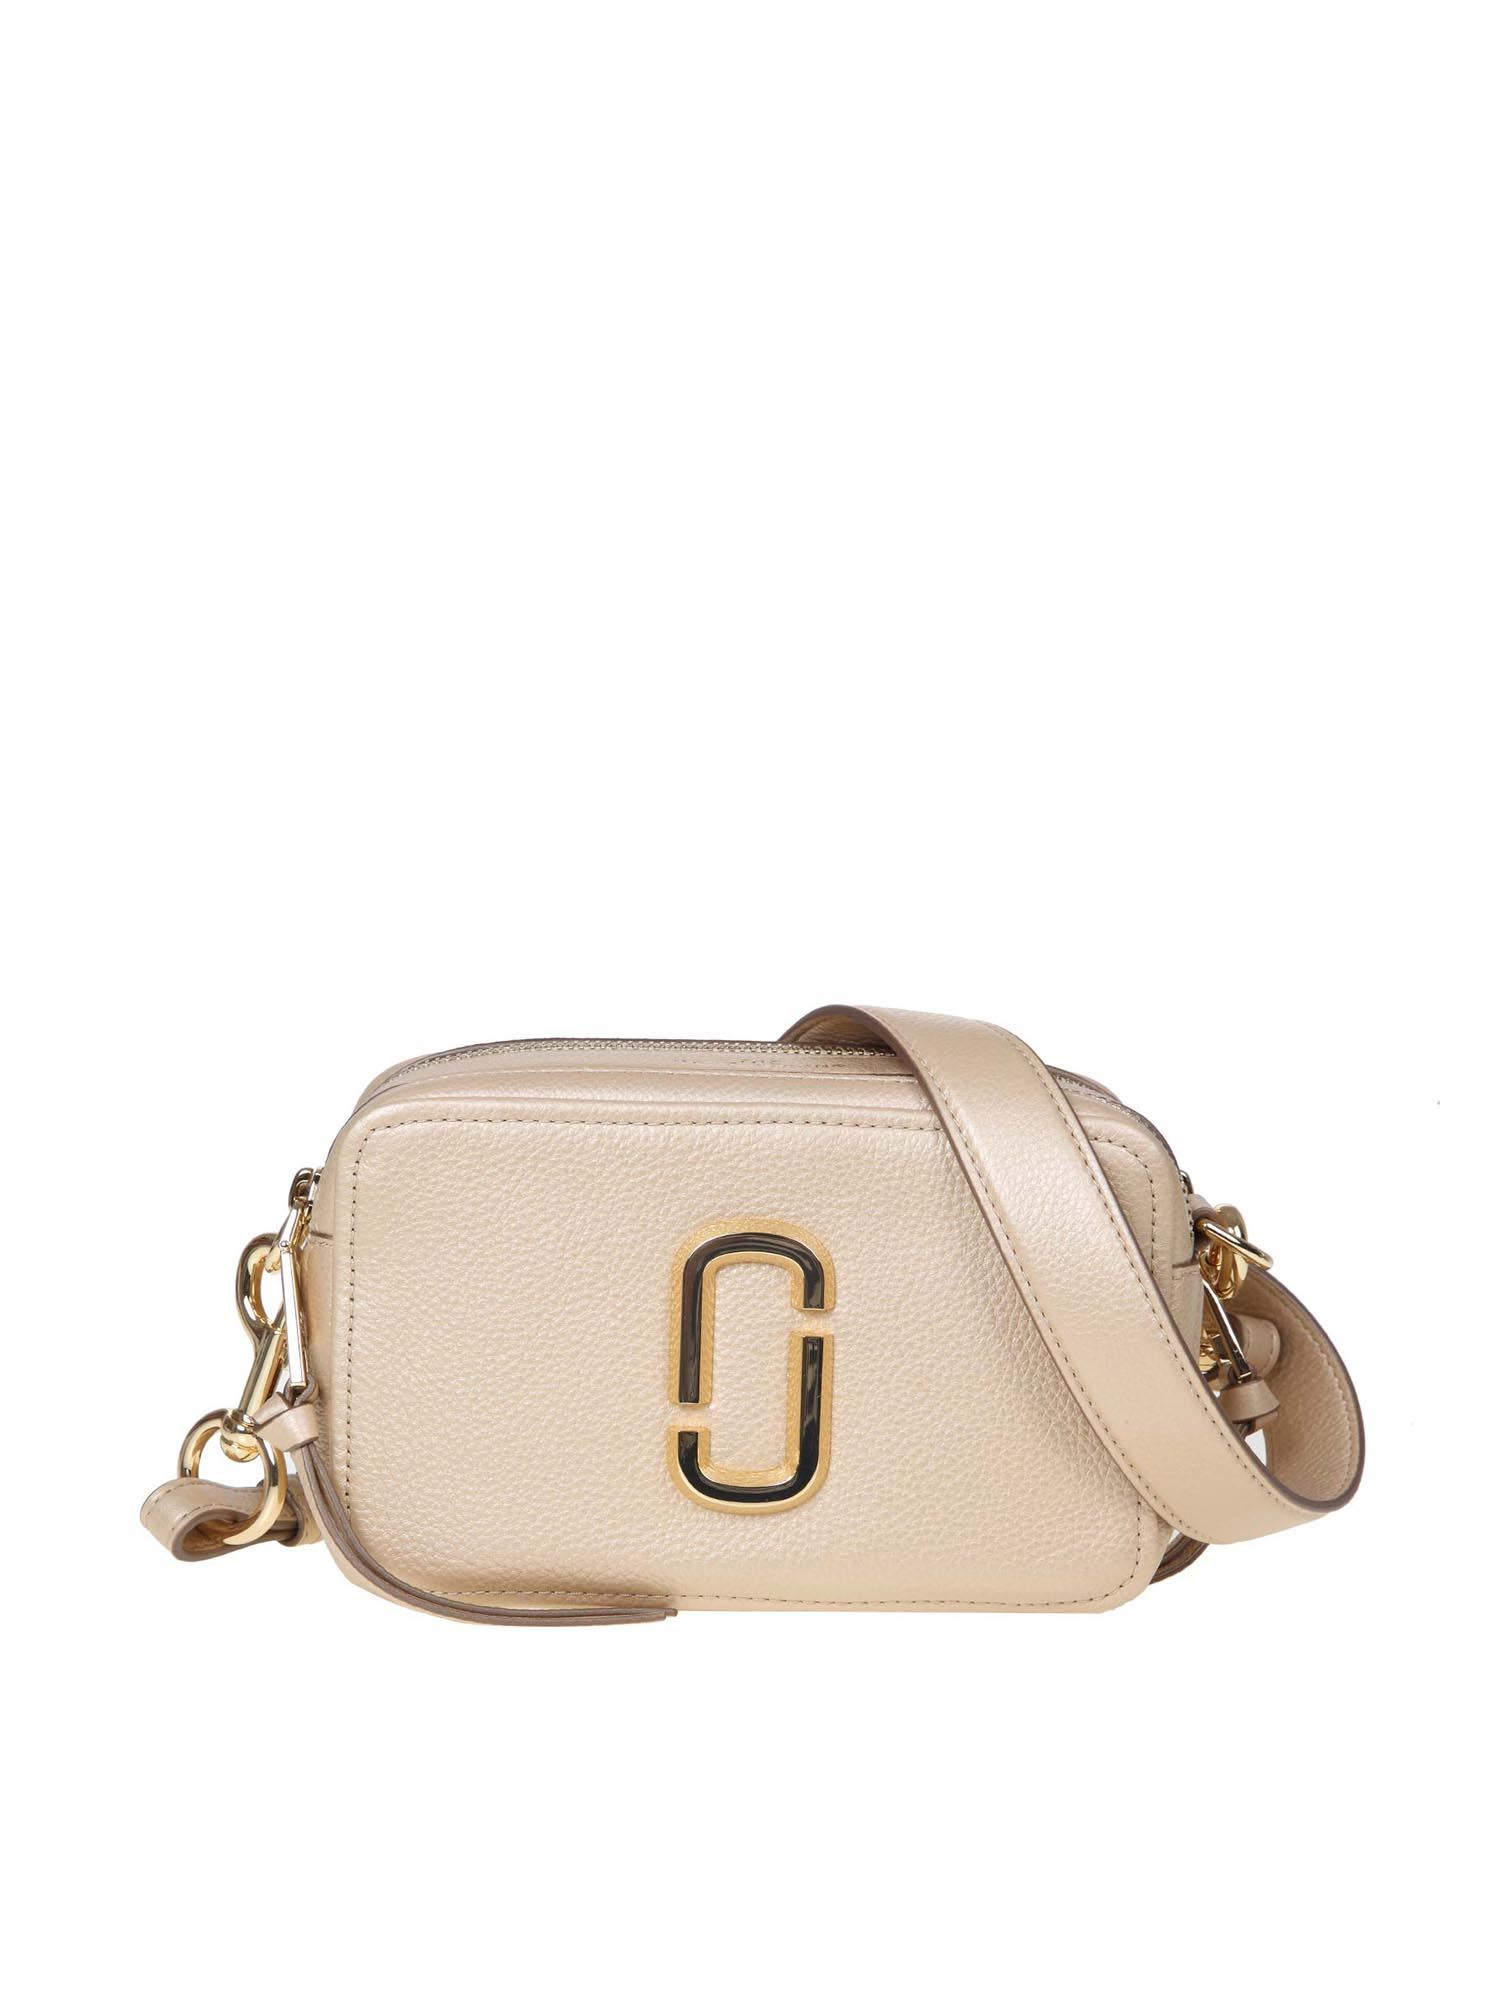 Marc Jacobs THE SOFTSHOT PEARLIZED BAG IN GOLD COLOR